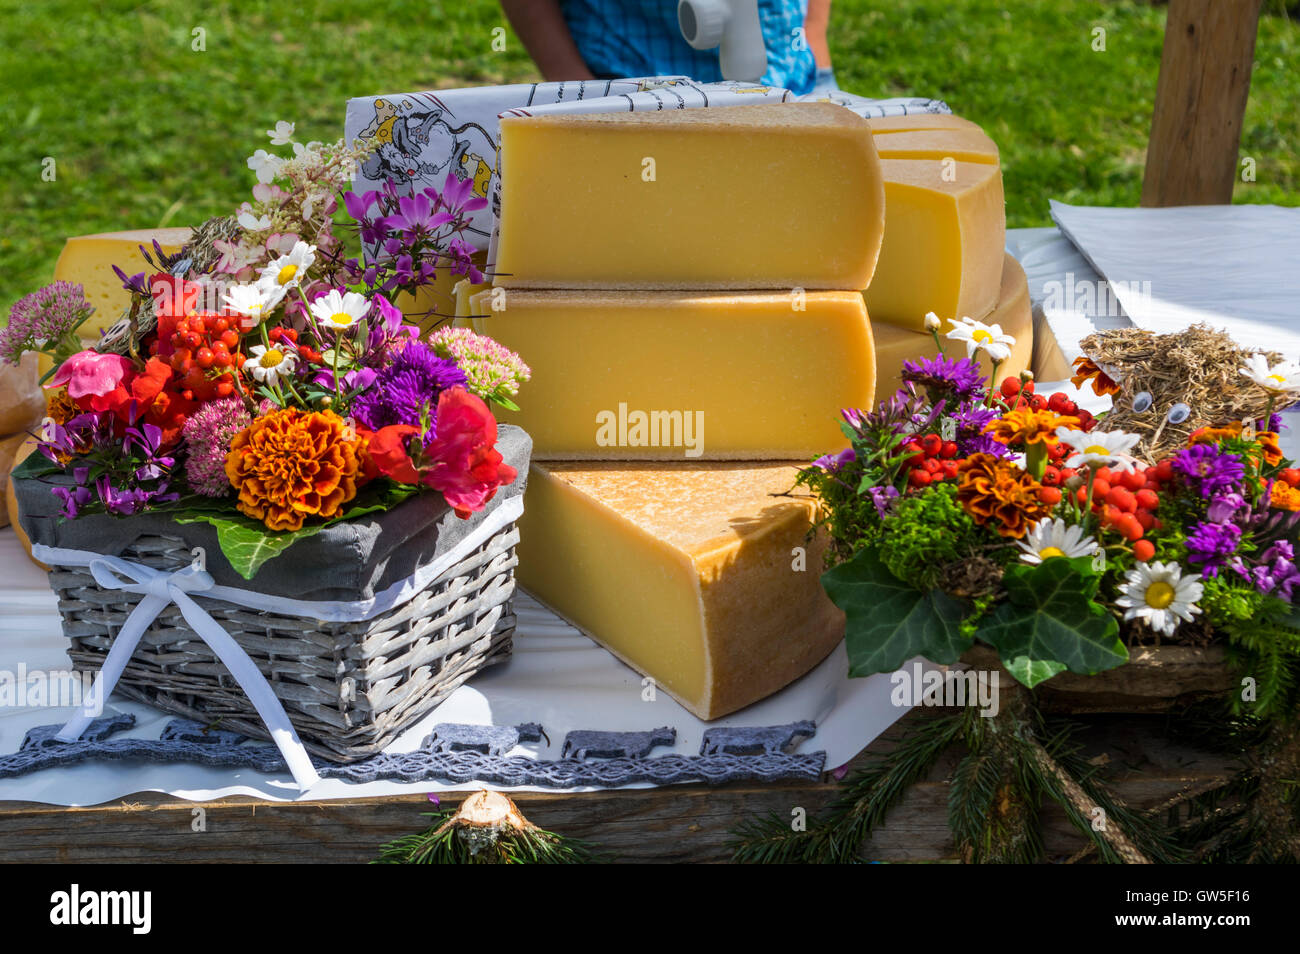 Berner Alpkäse AOC cheese for sale on a market stall in Switzerland. - Stock Image